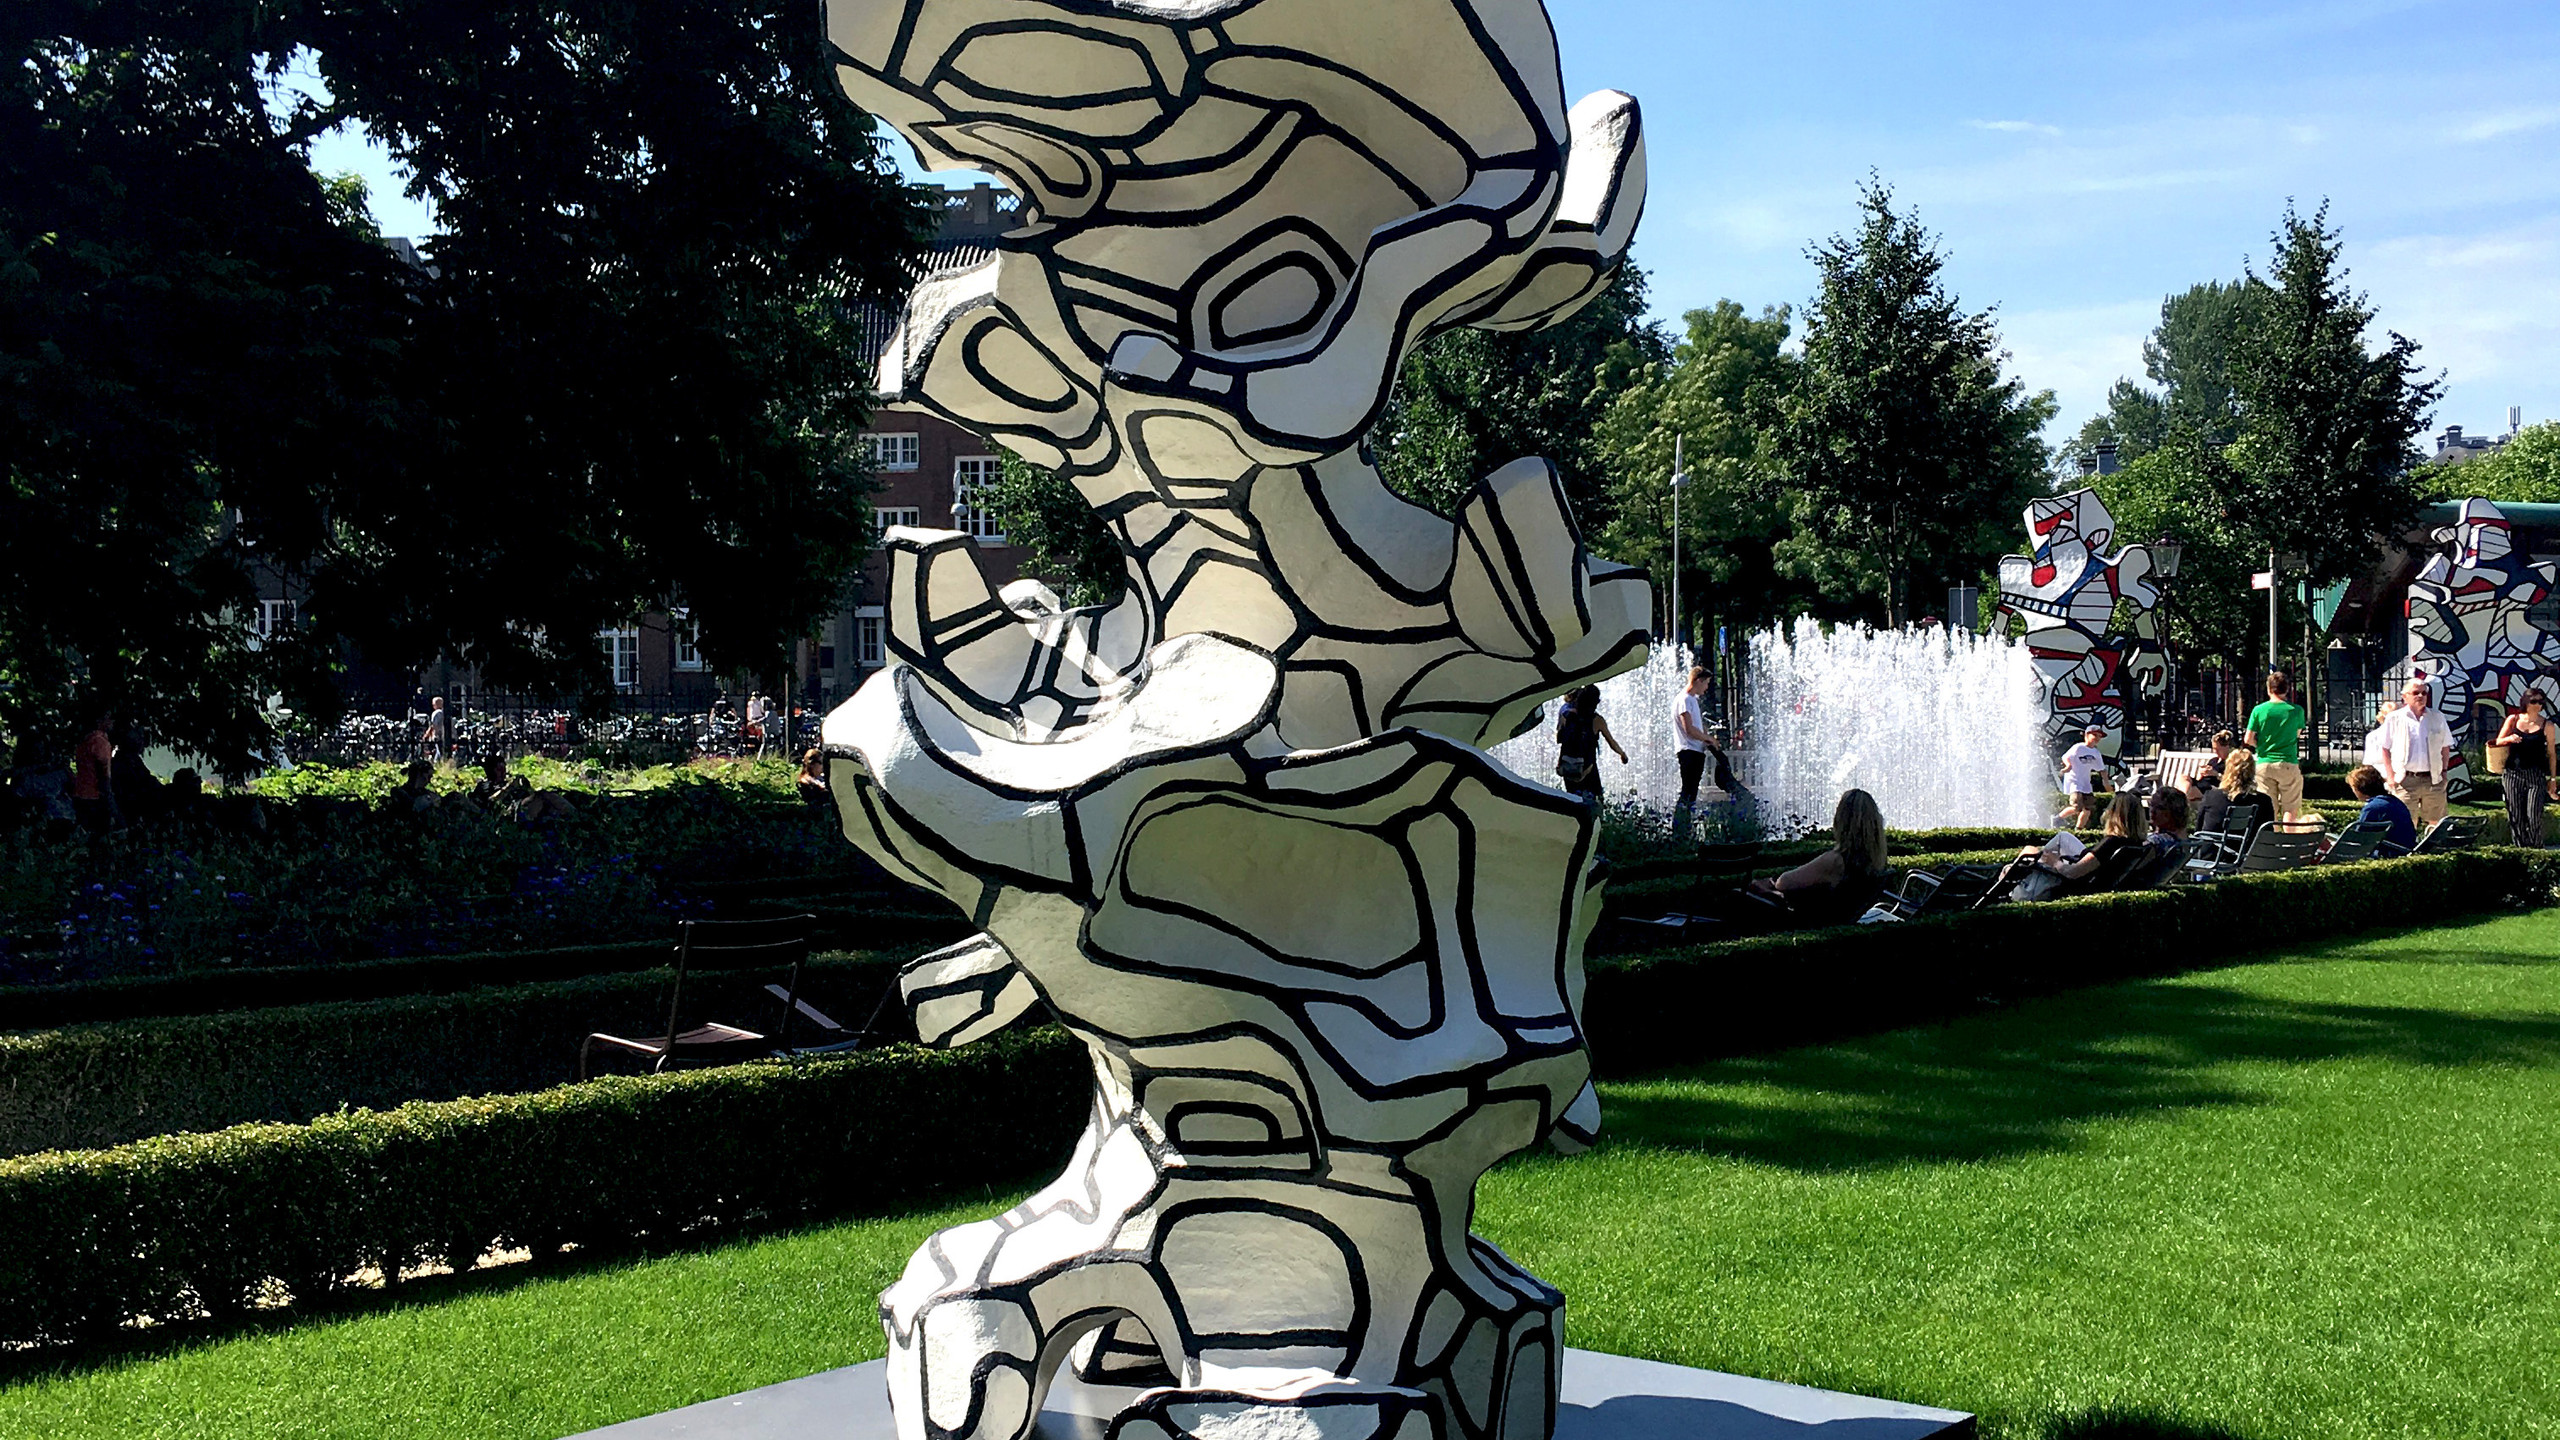 The Tour aux Recits (Stories tower) is part of a group of architectural sculptures, the most important of which is the 24-metre-high Tour aux figures (Tower with figures) built near Paris. In photo montages Dubuffet showed that he wanted to realize this kind of sculpture in the city, for instance a town house between two blocks of flats.